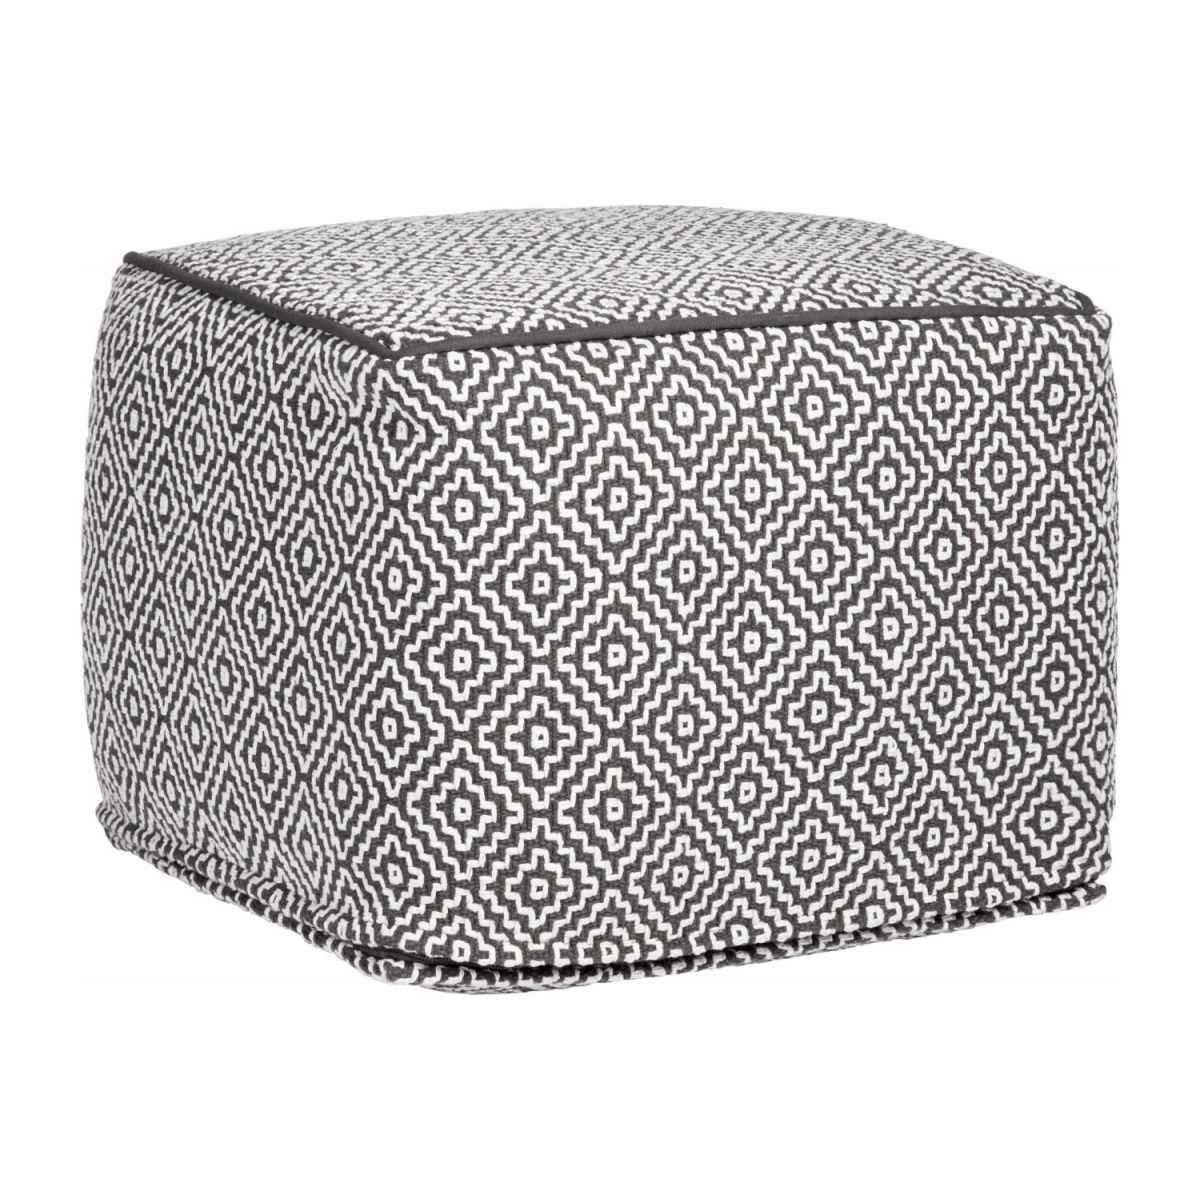 Footstool with black and white patterns n°1